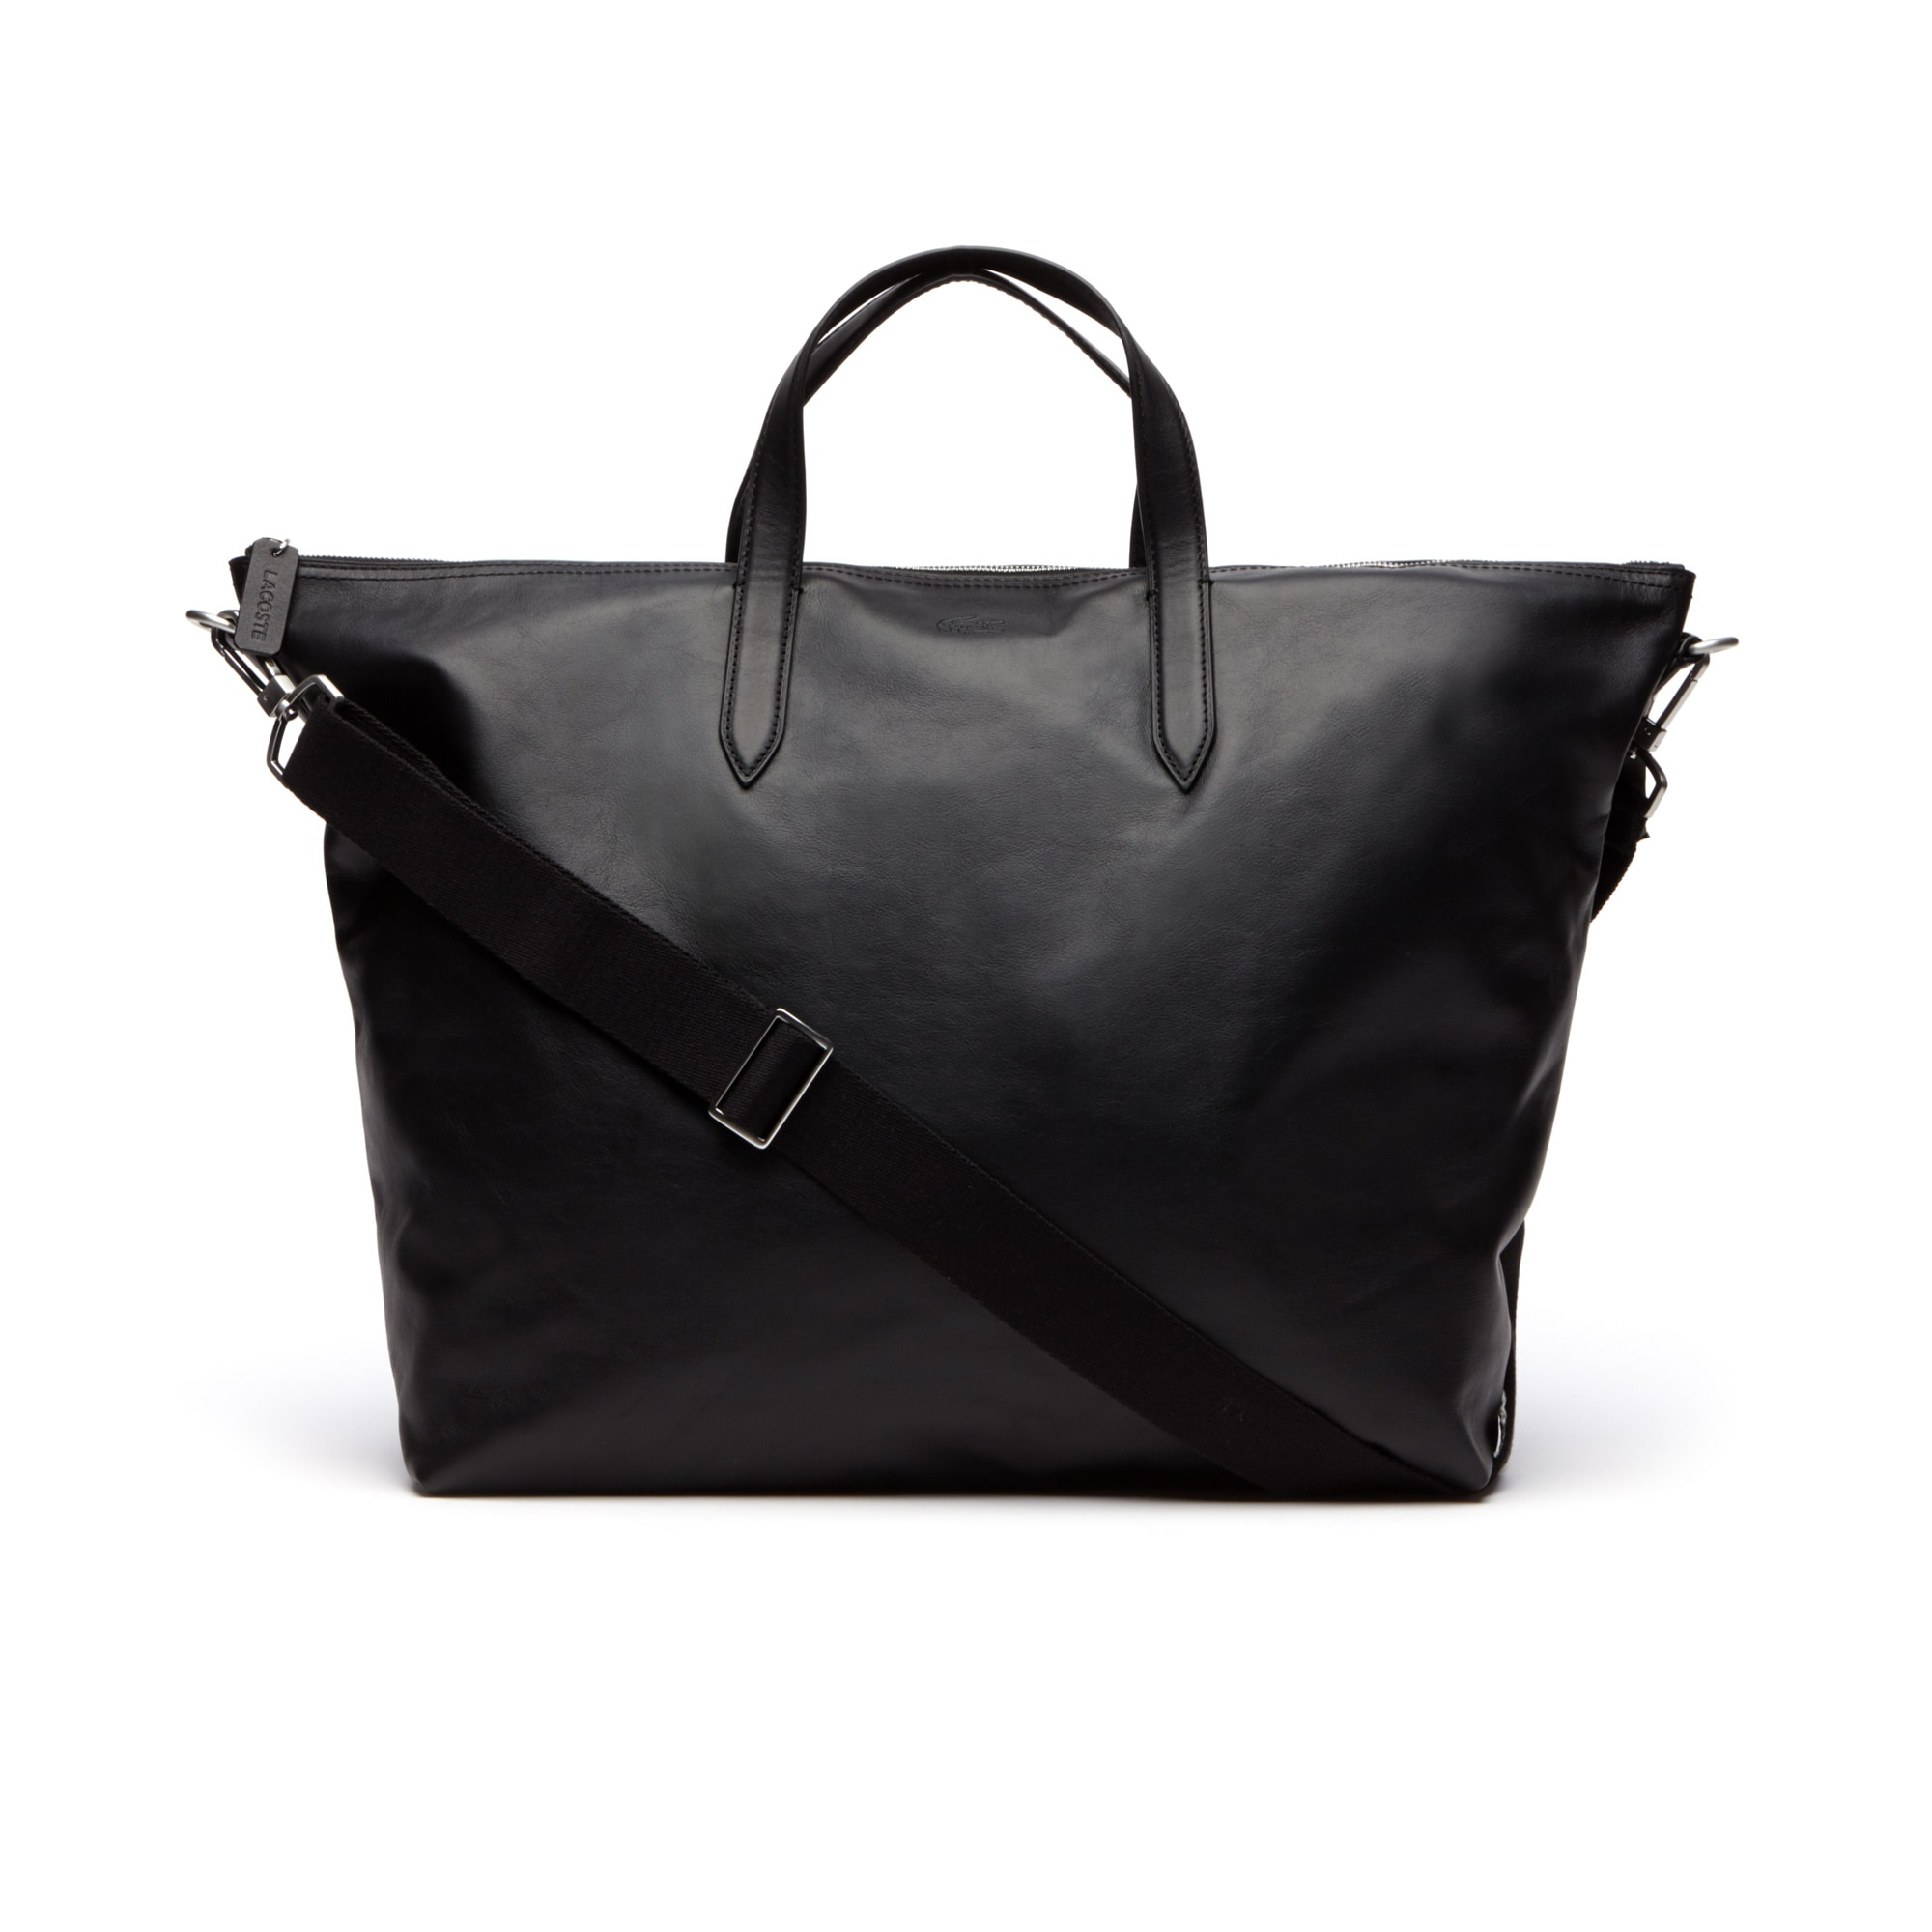 Leren L.12.12 Limited Edition 85th Anniversary weekendtas